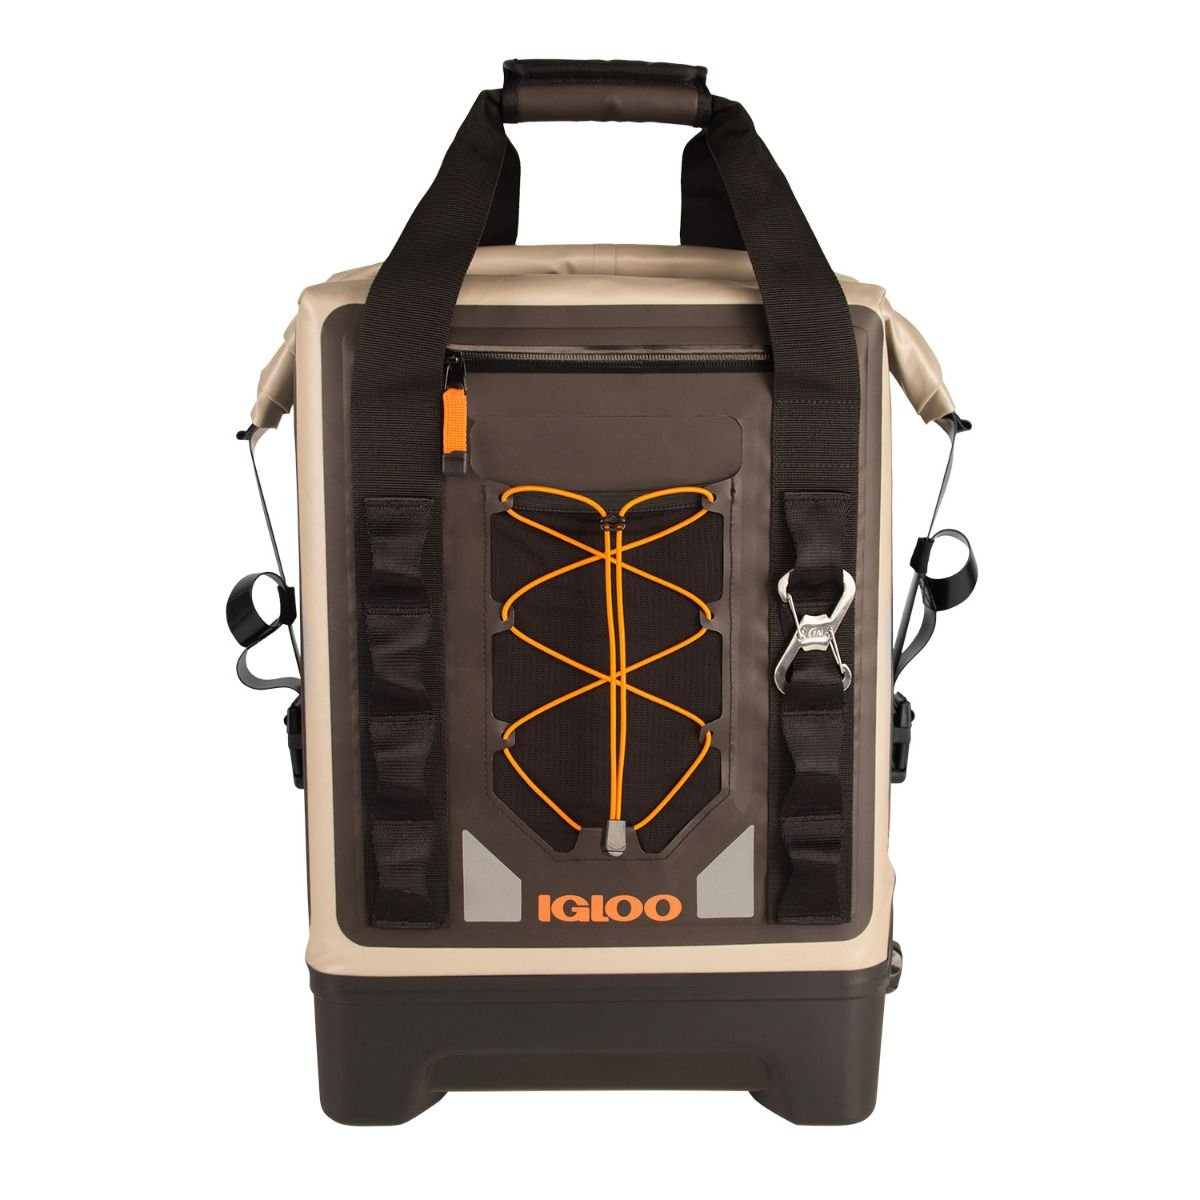 Igloo Sportsman Backpack Igloo Backpack Cooler